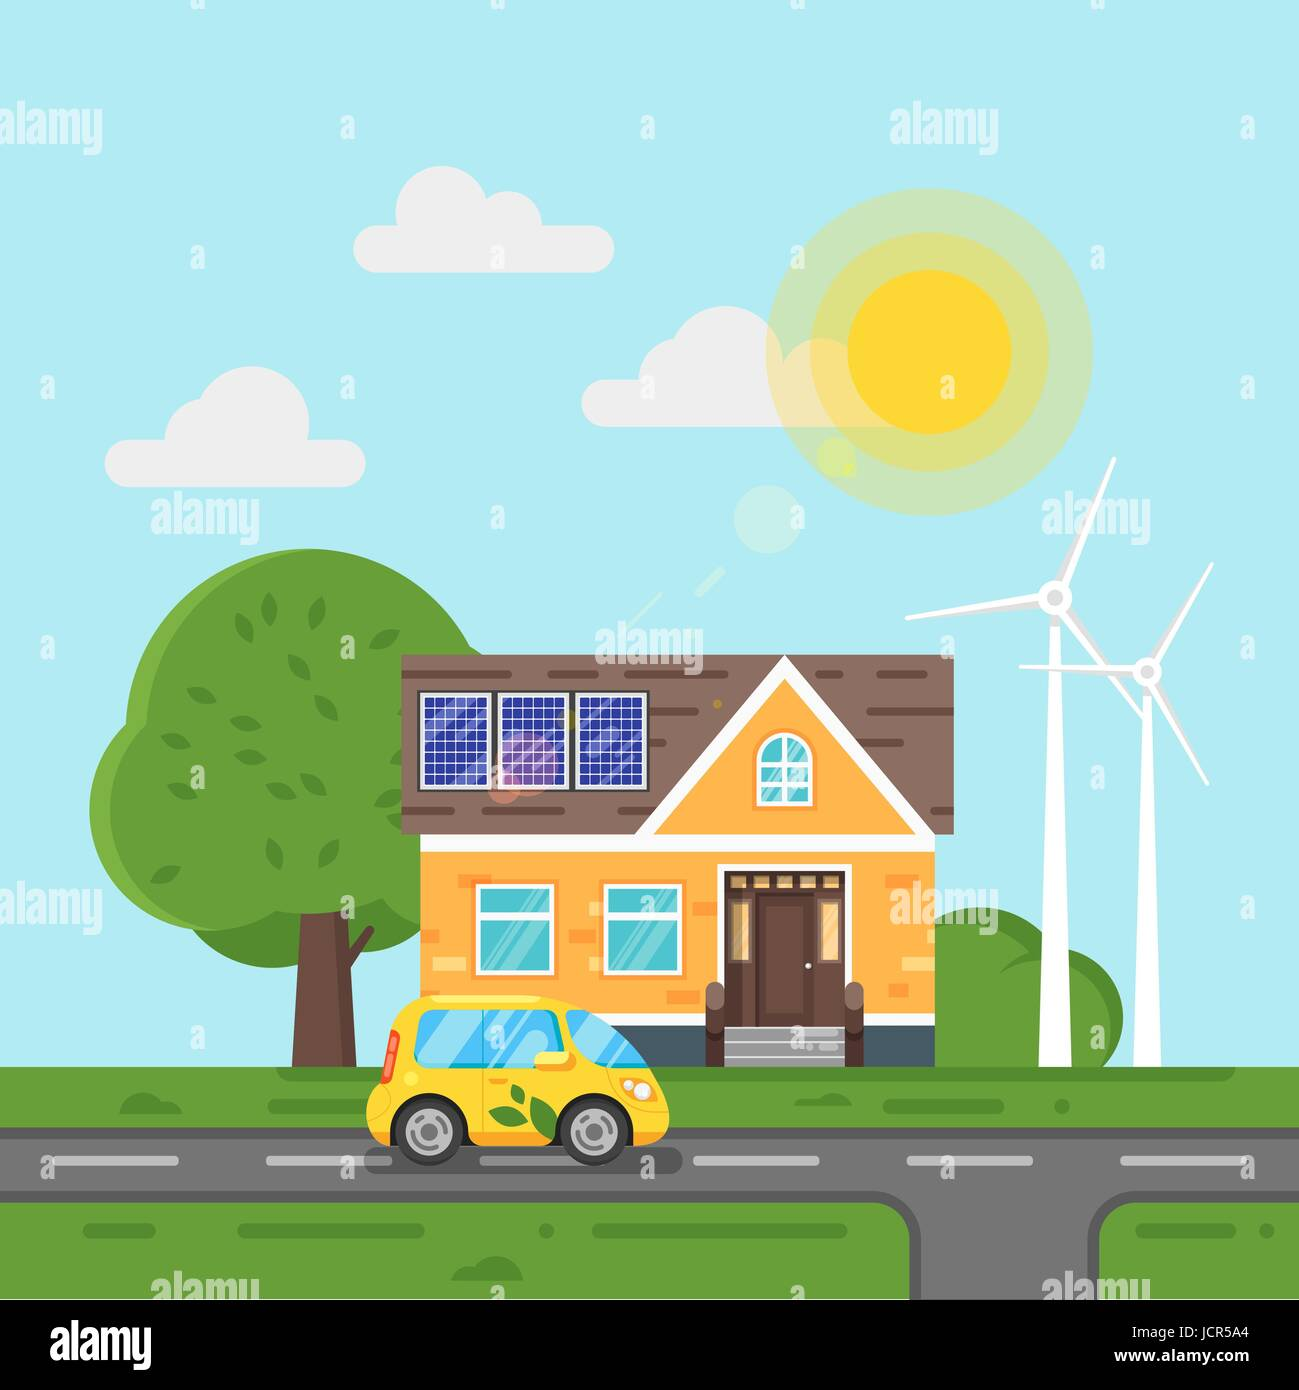 Vector flat style illustration of electric car and house with solar panels. Blue background. Icon for web. Eco concept - Stock Vector